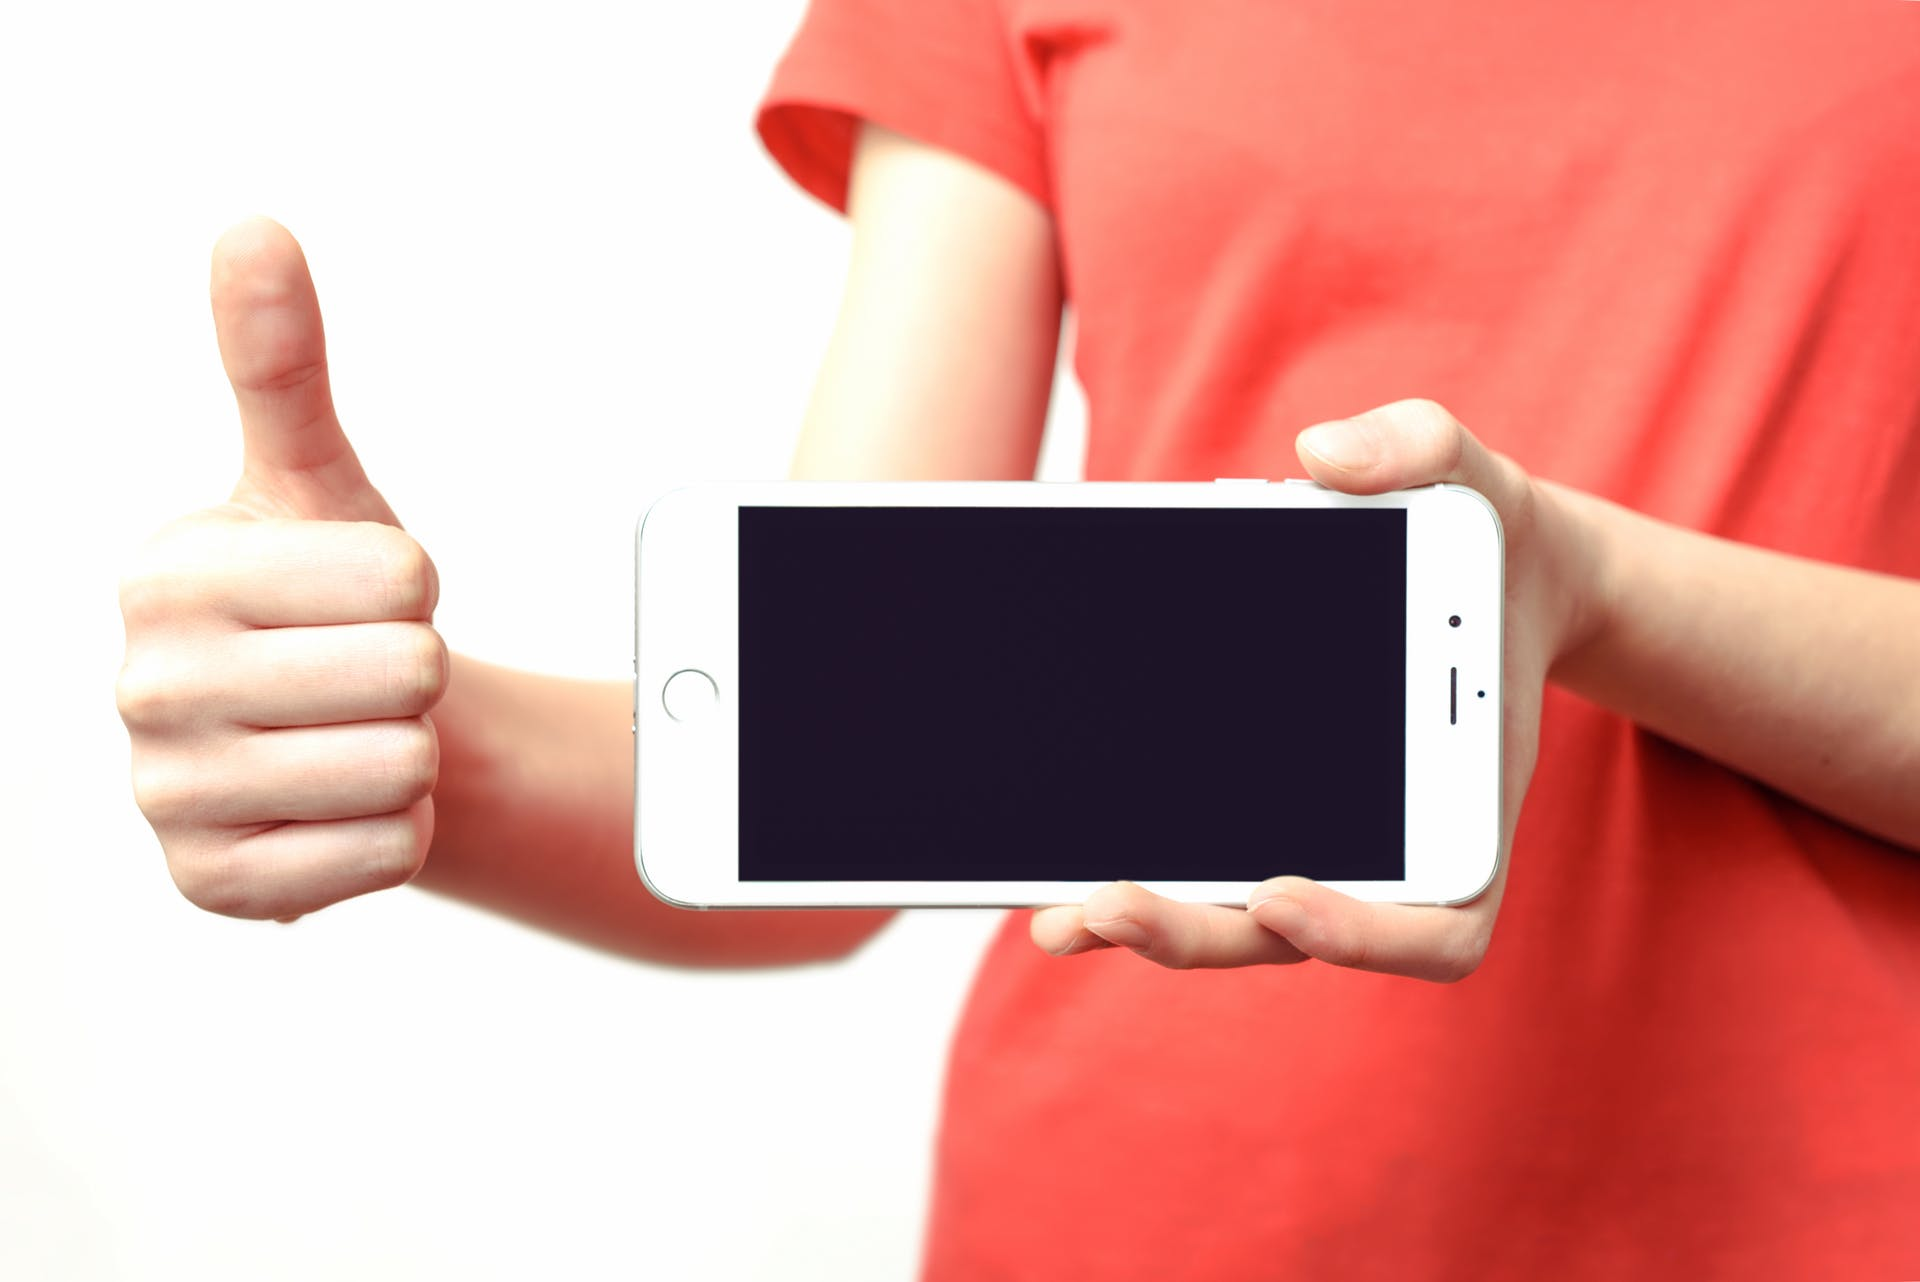 gesture red phone presentation device hands human iphone wireless electronics